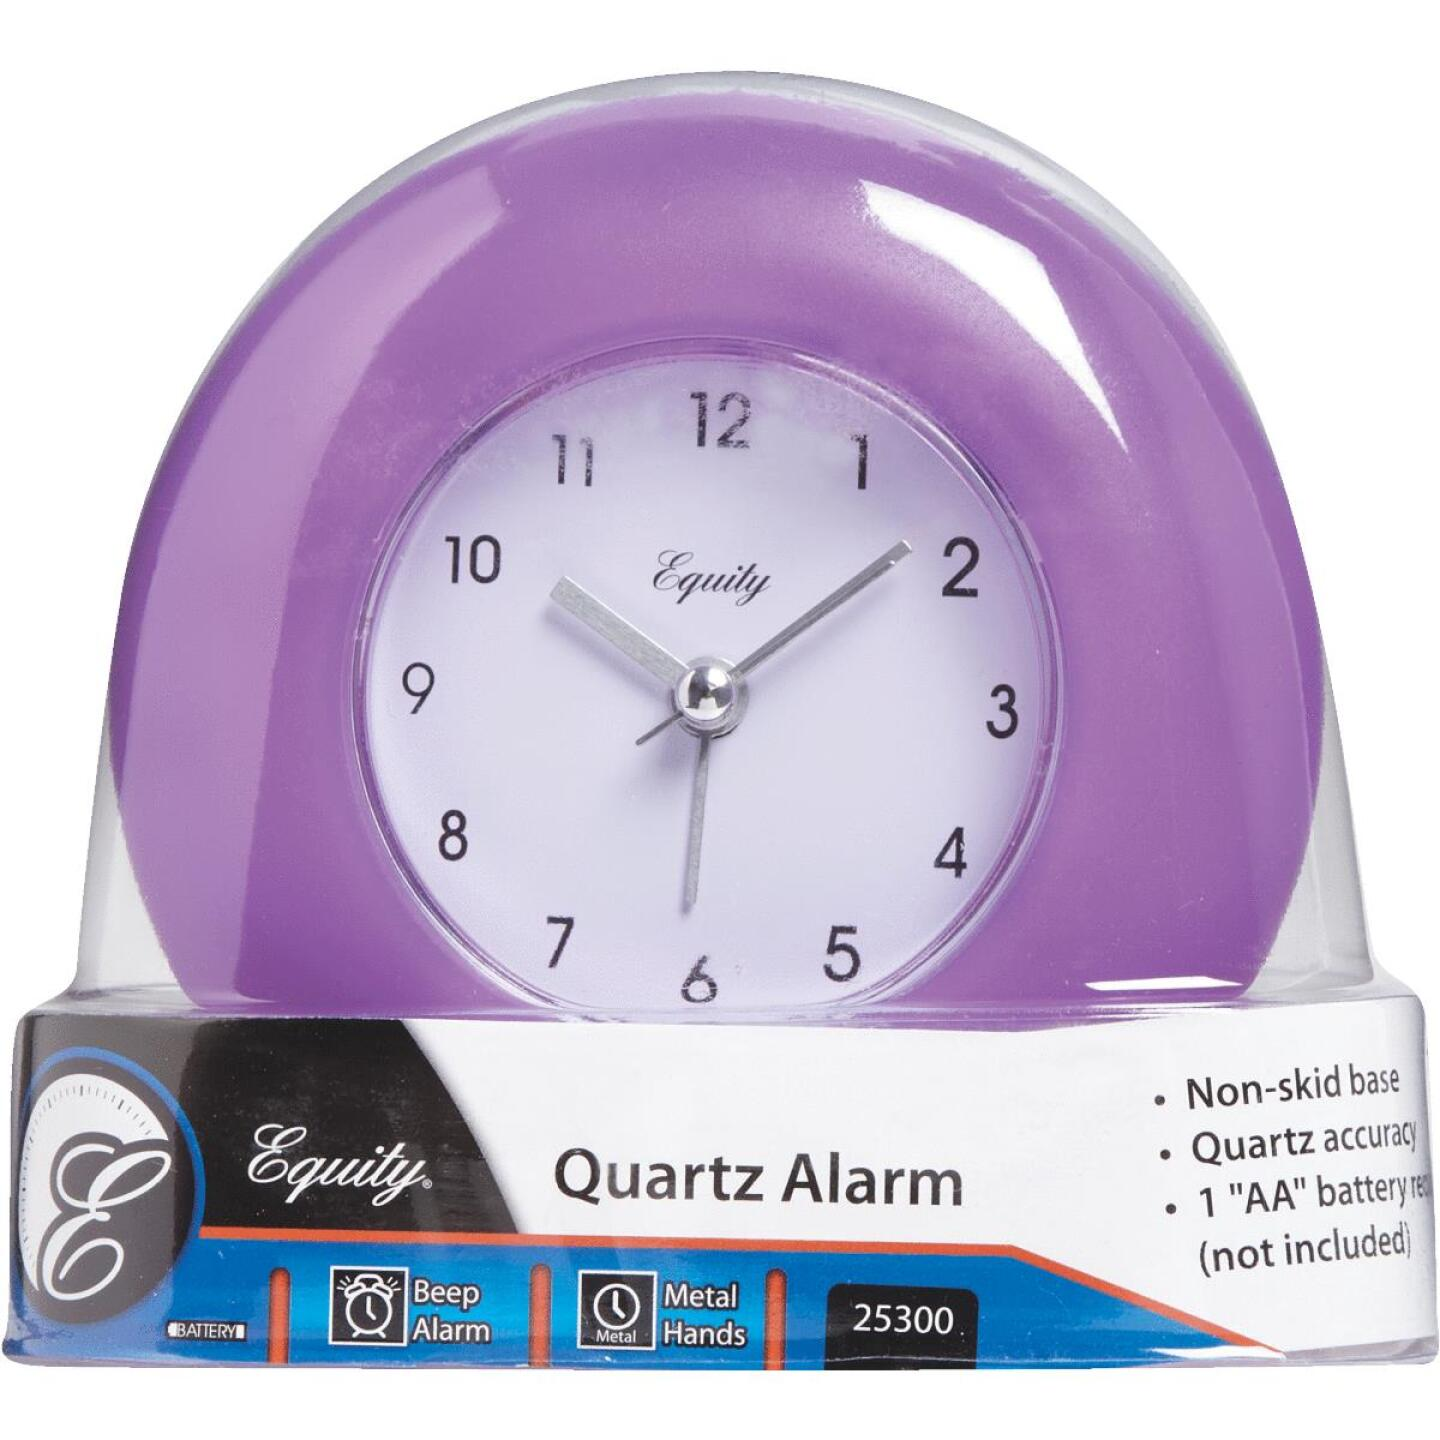 La Crosse Technology Equity Frosted Analog Battery Operated Alarm Clock Image 3